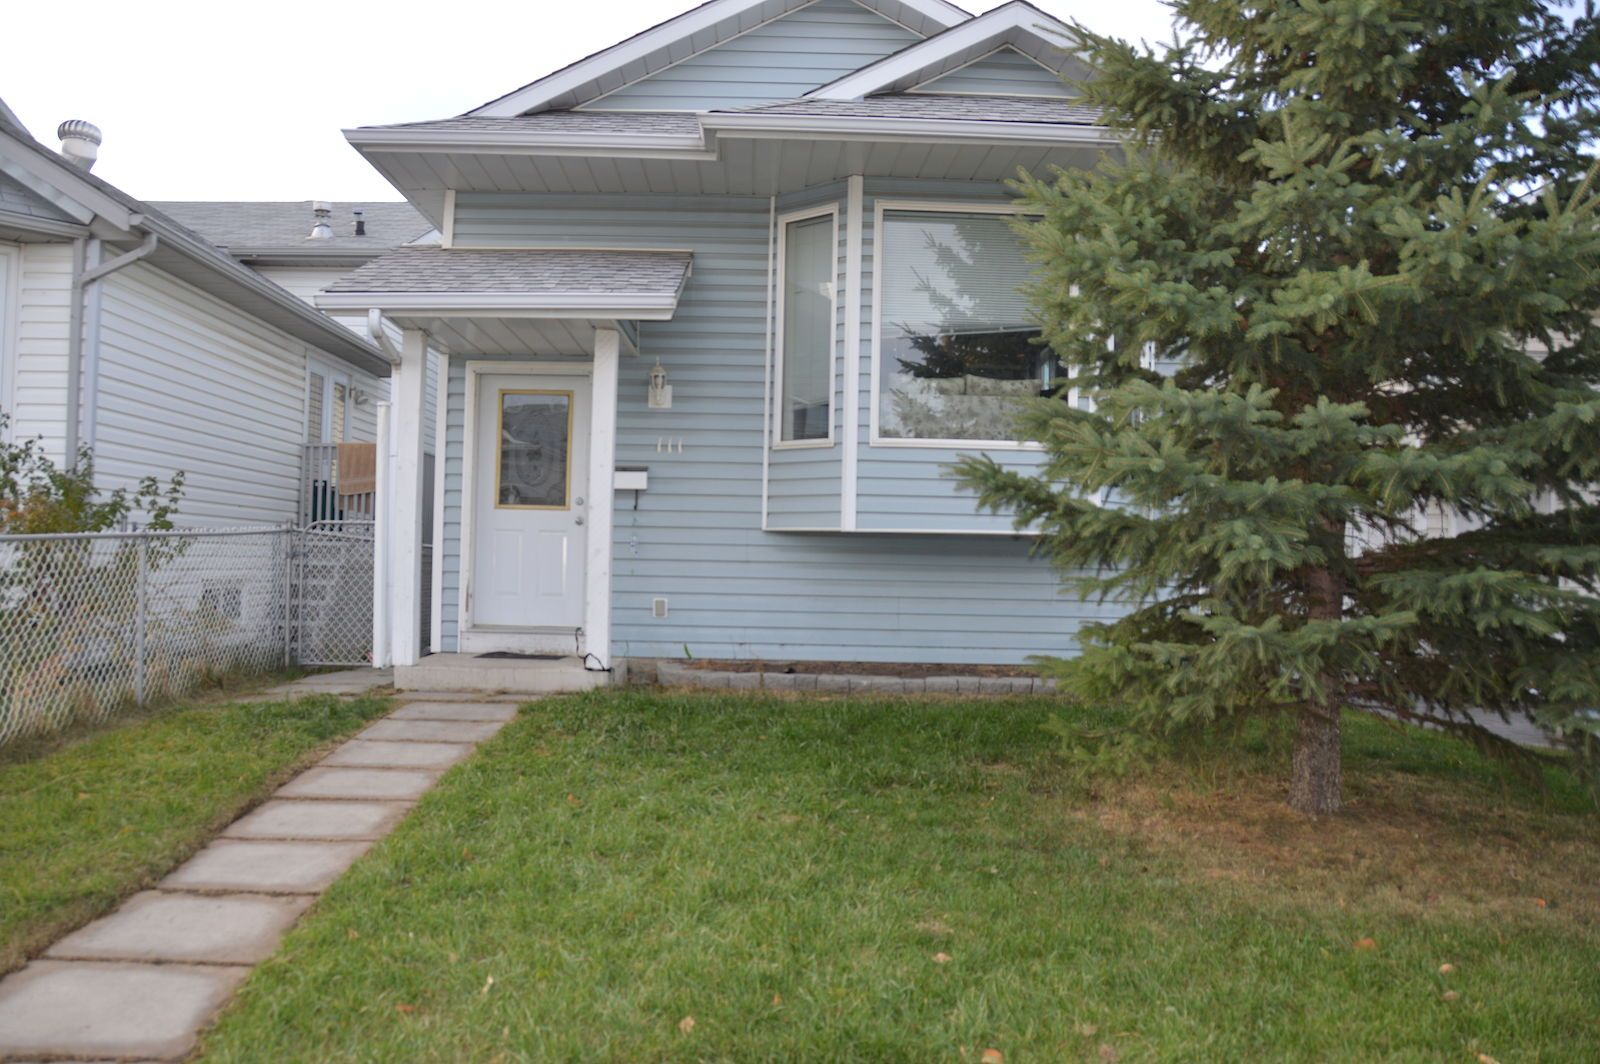 House For Rent By Landlord Pet Friendly House Info Renting A